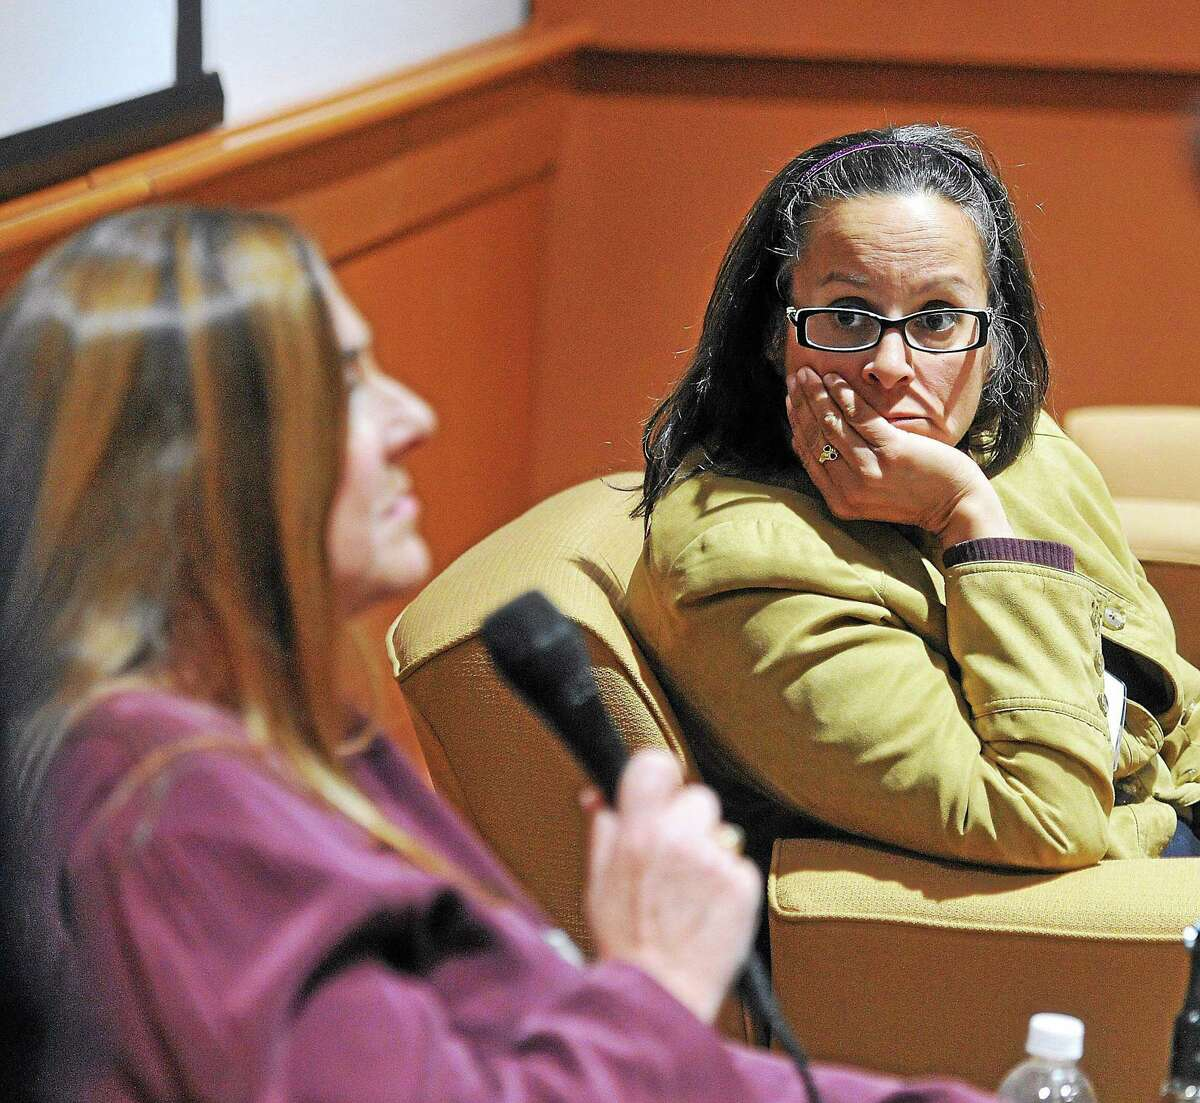 Panelists Dr. Dorothy Stubbe, left, and Kathy Flaherty, right, field questions as mental health professionals and law experts participate during a 2017 symposium at Quinnipiac University on gun violence.